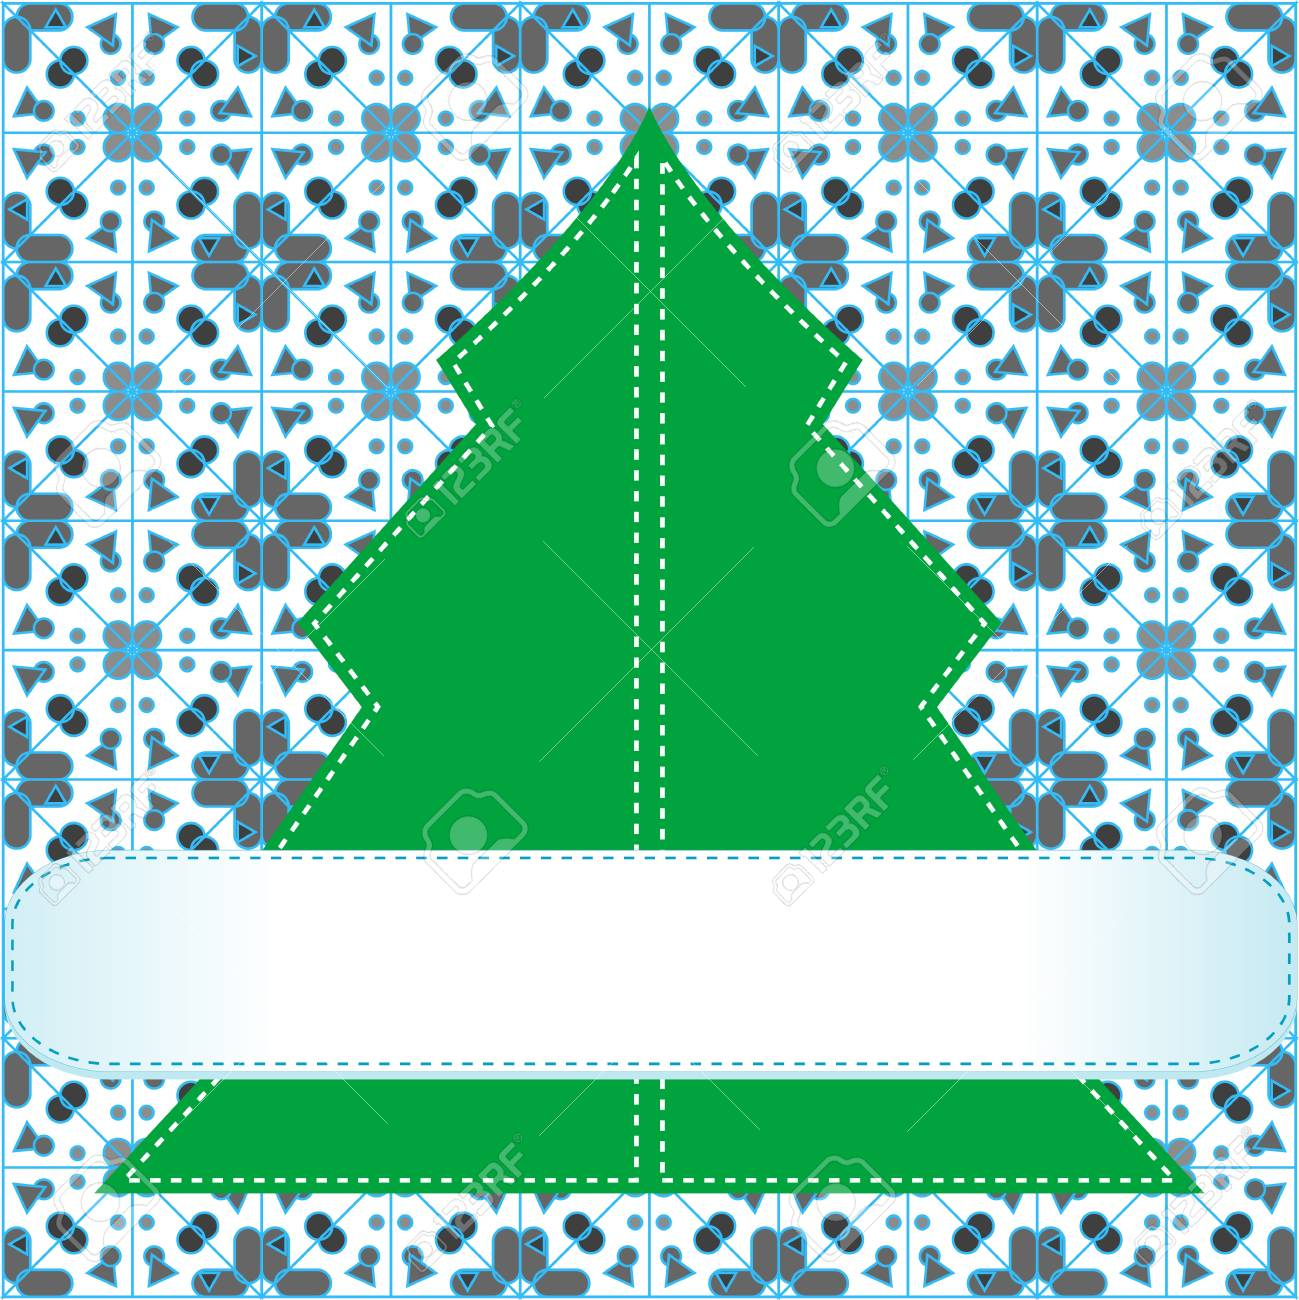 Christmas tree applique background Stock Photo - 16656248